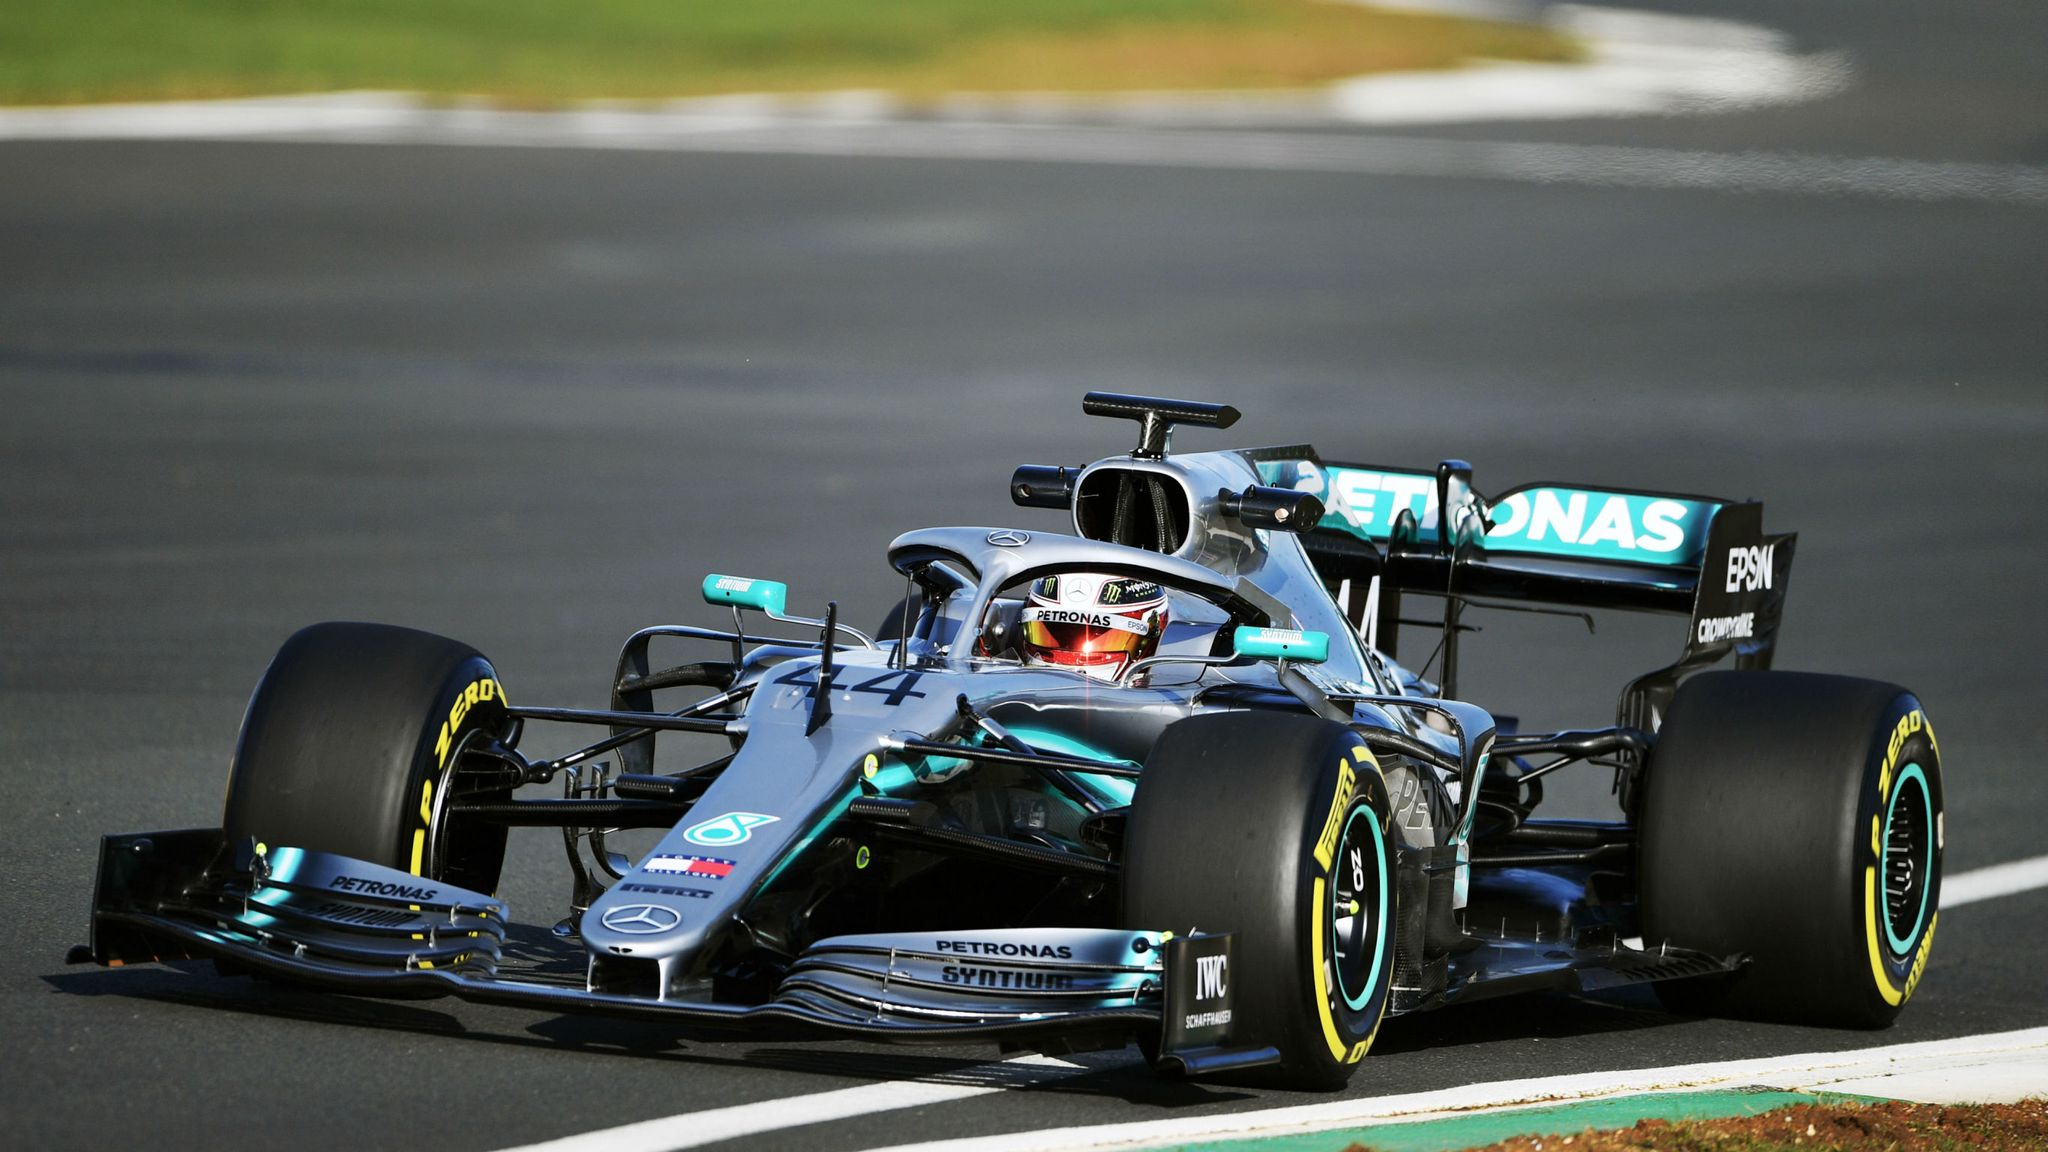 F1 2019 Lewis Hamilton Warns He Is Ready To Attack F1 News